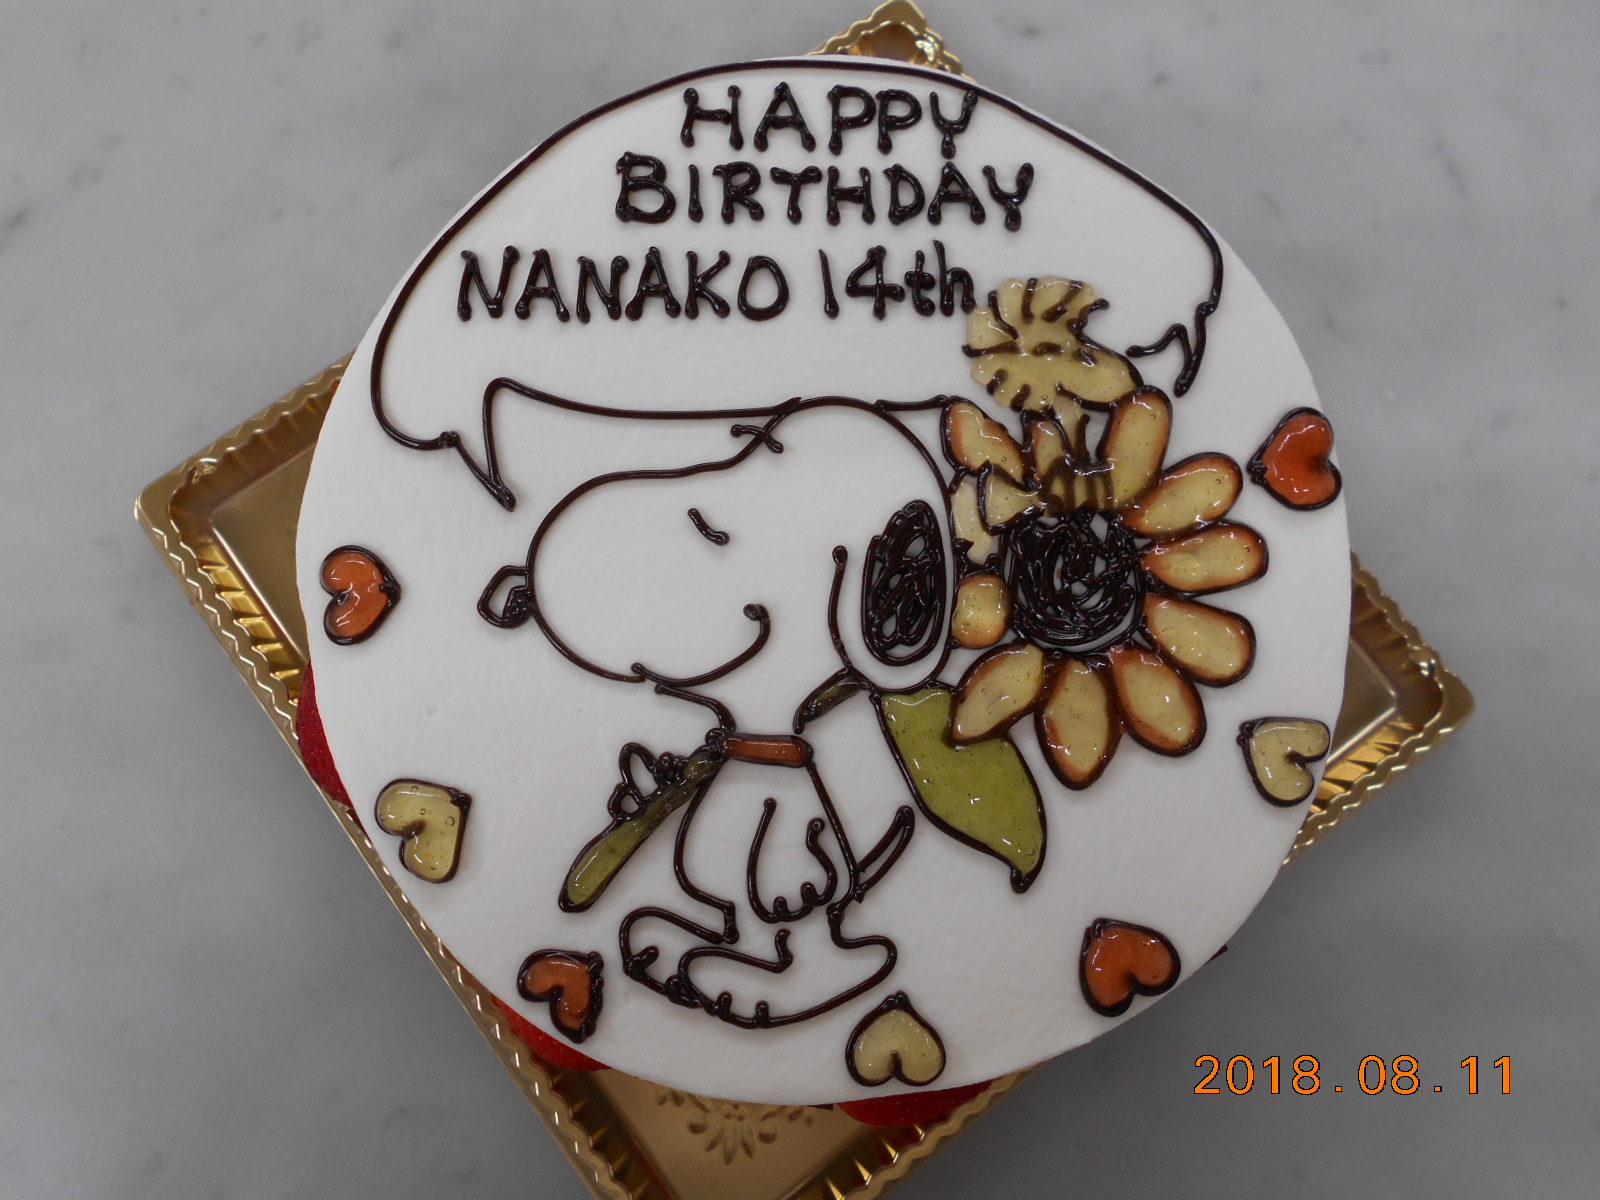 HAPPY BIRTHDAY NANAKO 14th